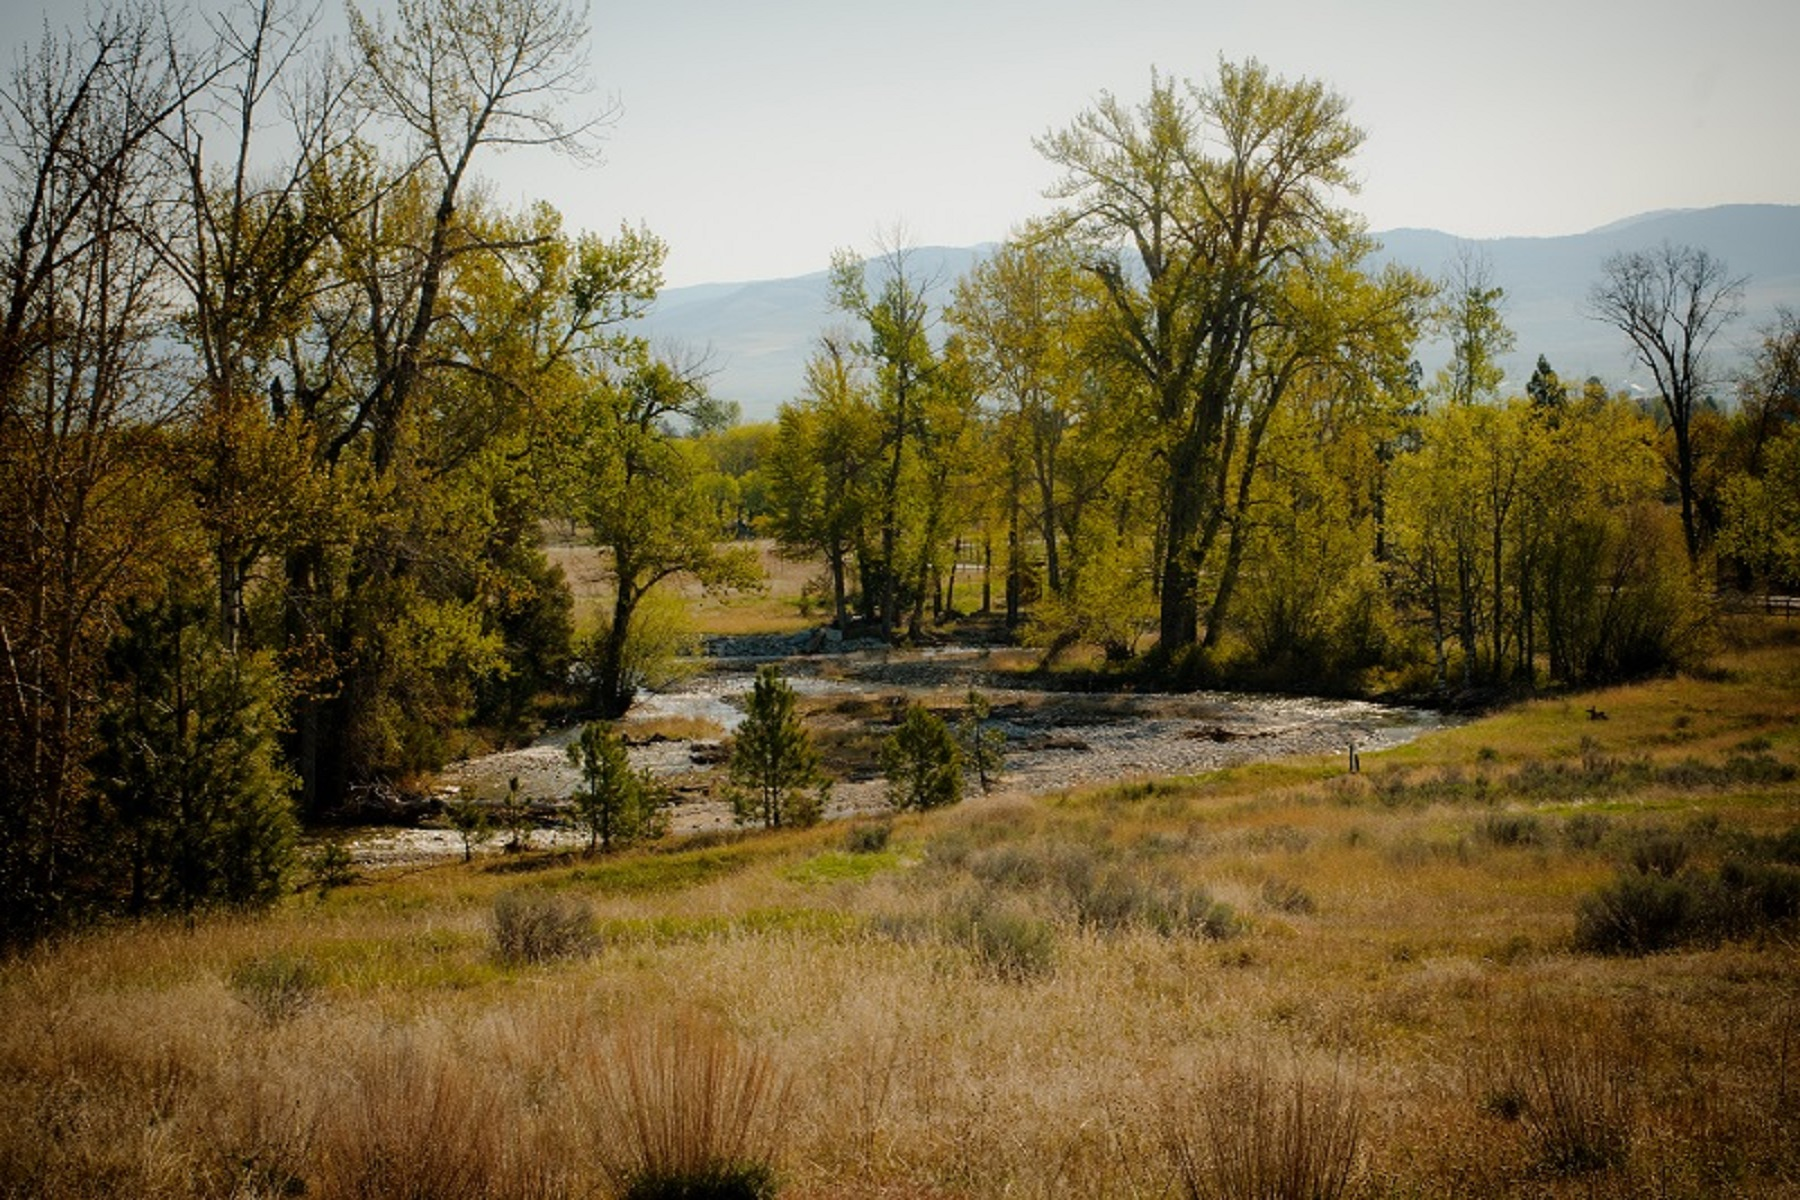 Land for Sale at Lot 14 Hillside Ranch Rd Lot 14 Hillside Ranch Rd Victor, Montana, 59875 United States